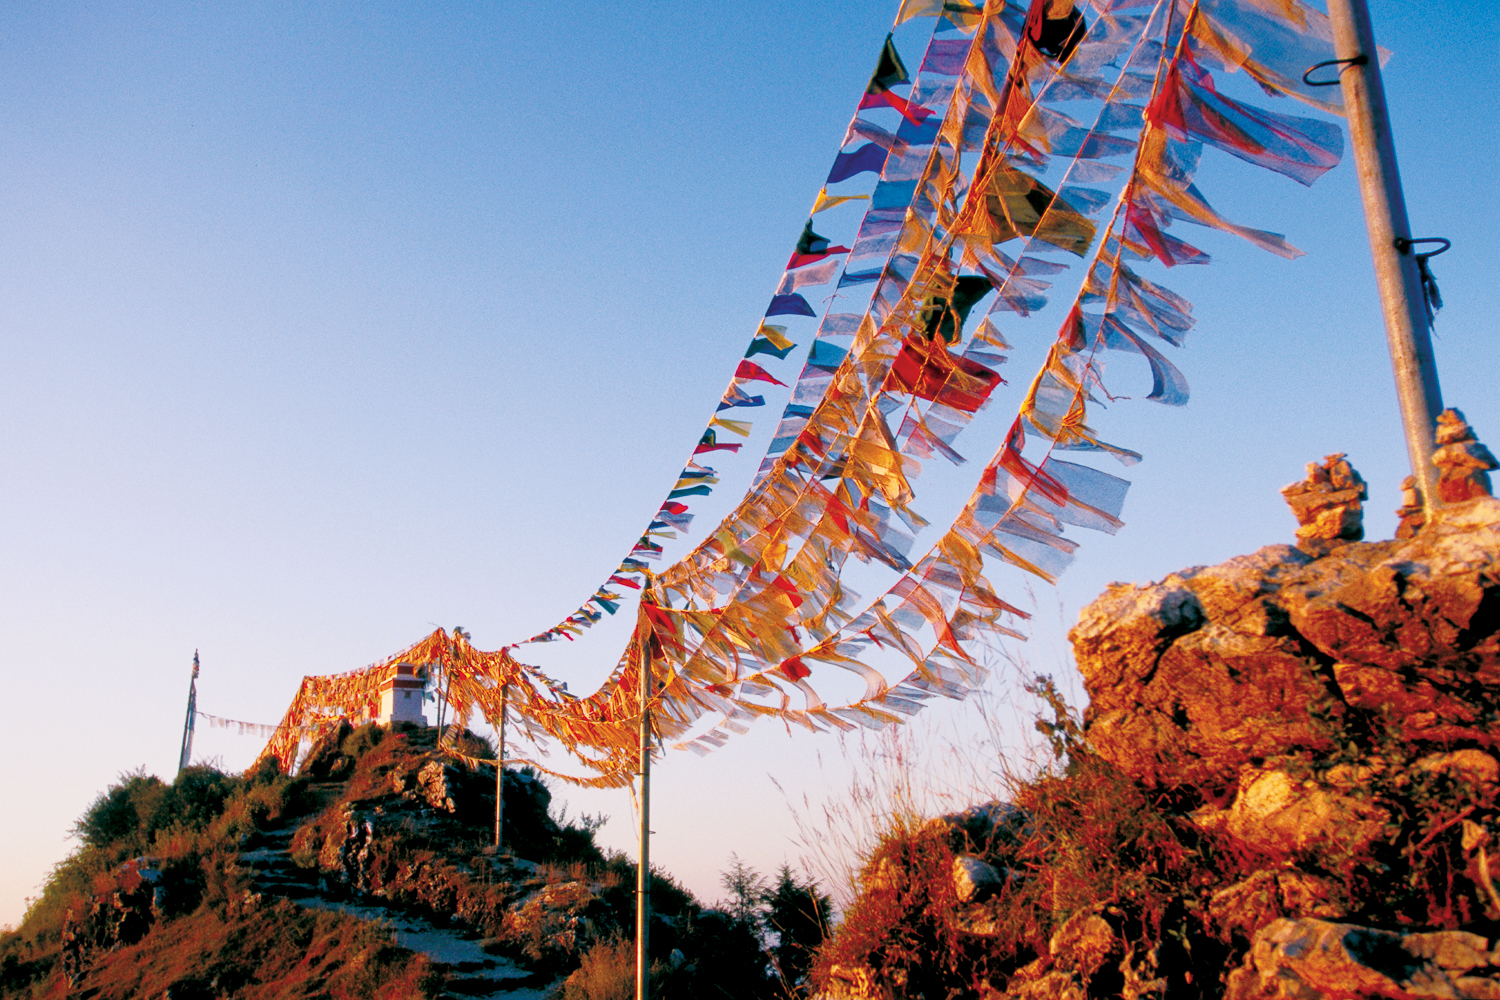 Prayer flags - which serve as reminders of compassion in meditation - inspire this wish:  May whoever is touched by the wind that blows upon these flags find happiness and be free from suffering.